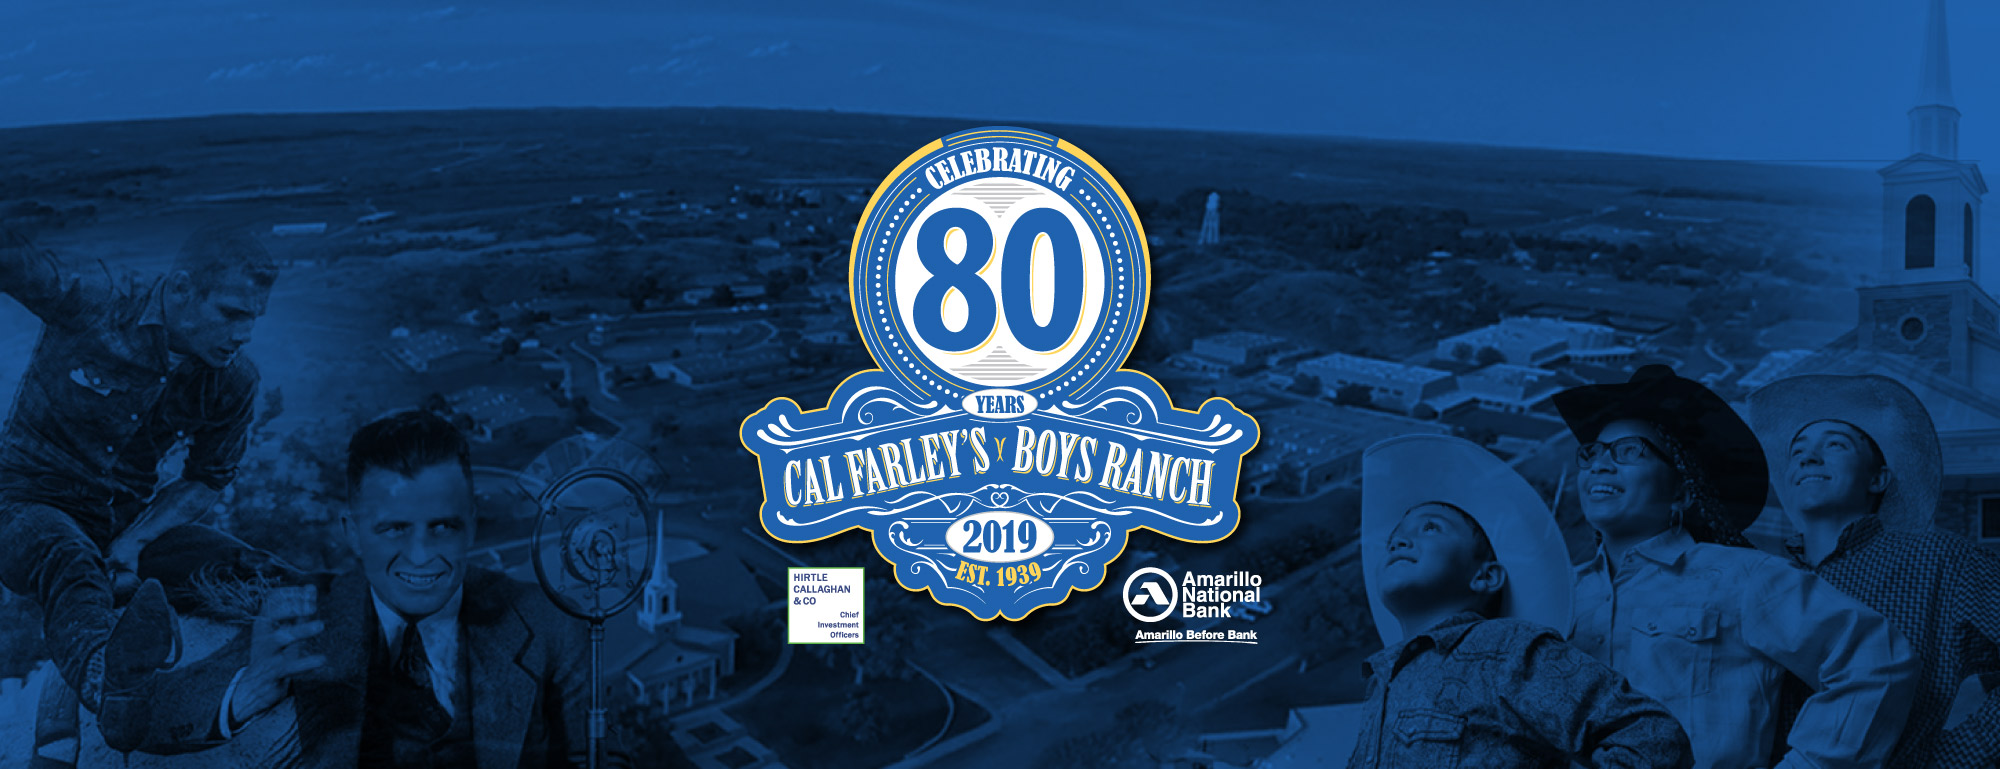 Picture of 80th anniversary logo